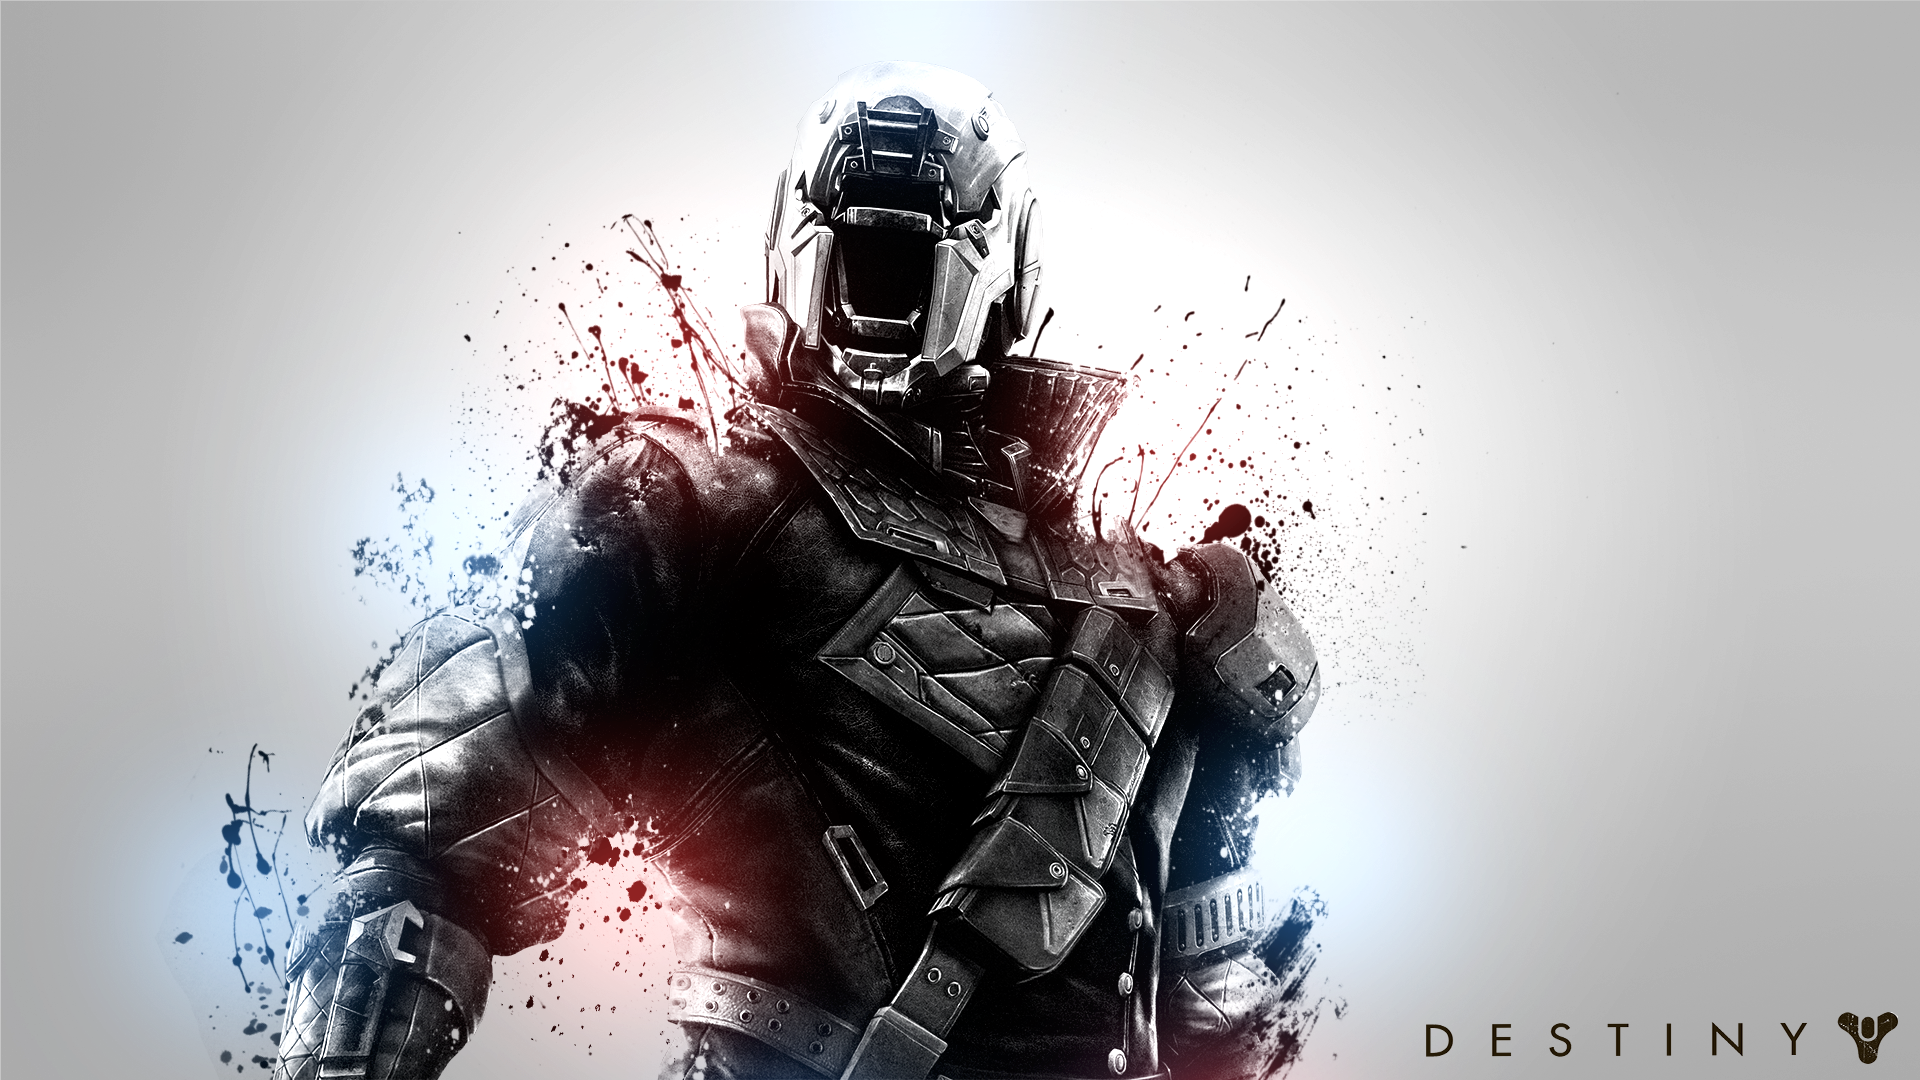 Destiny clipart 1920x1080 image library download Destiny desktop clipart - ClipartFox image library download